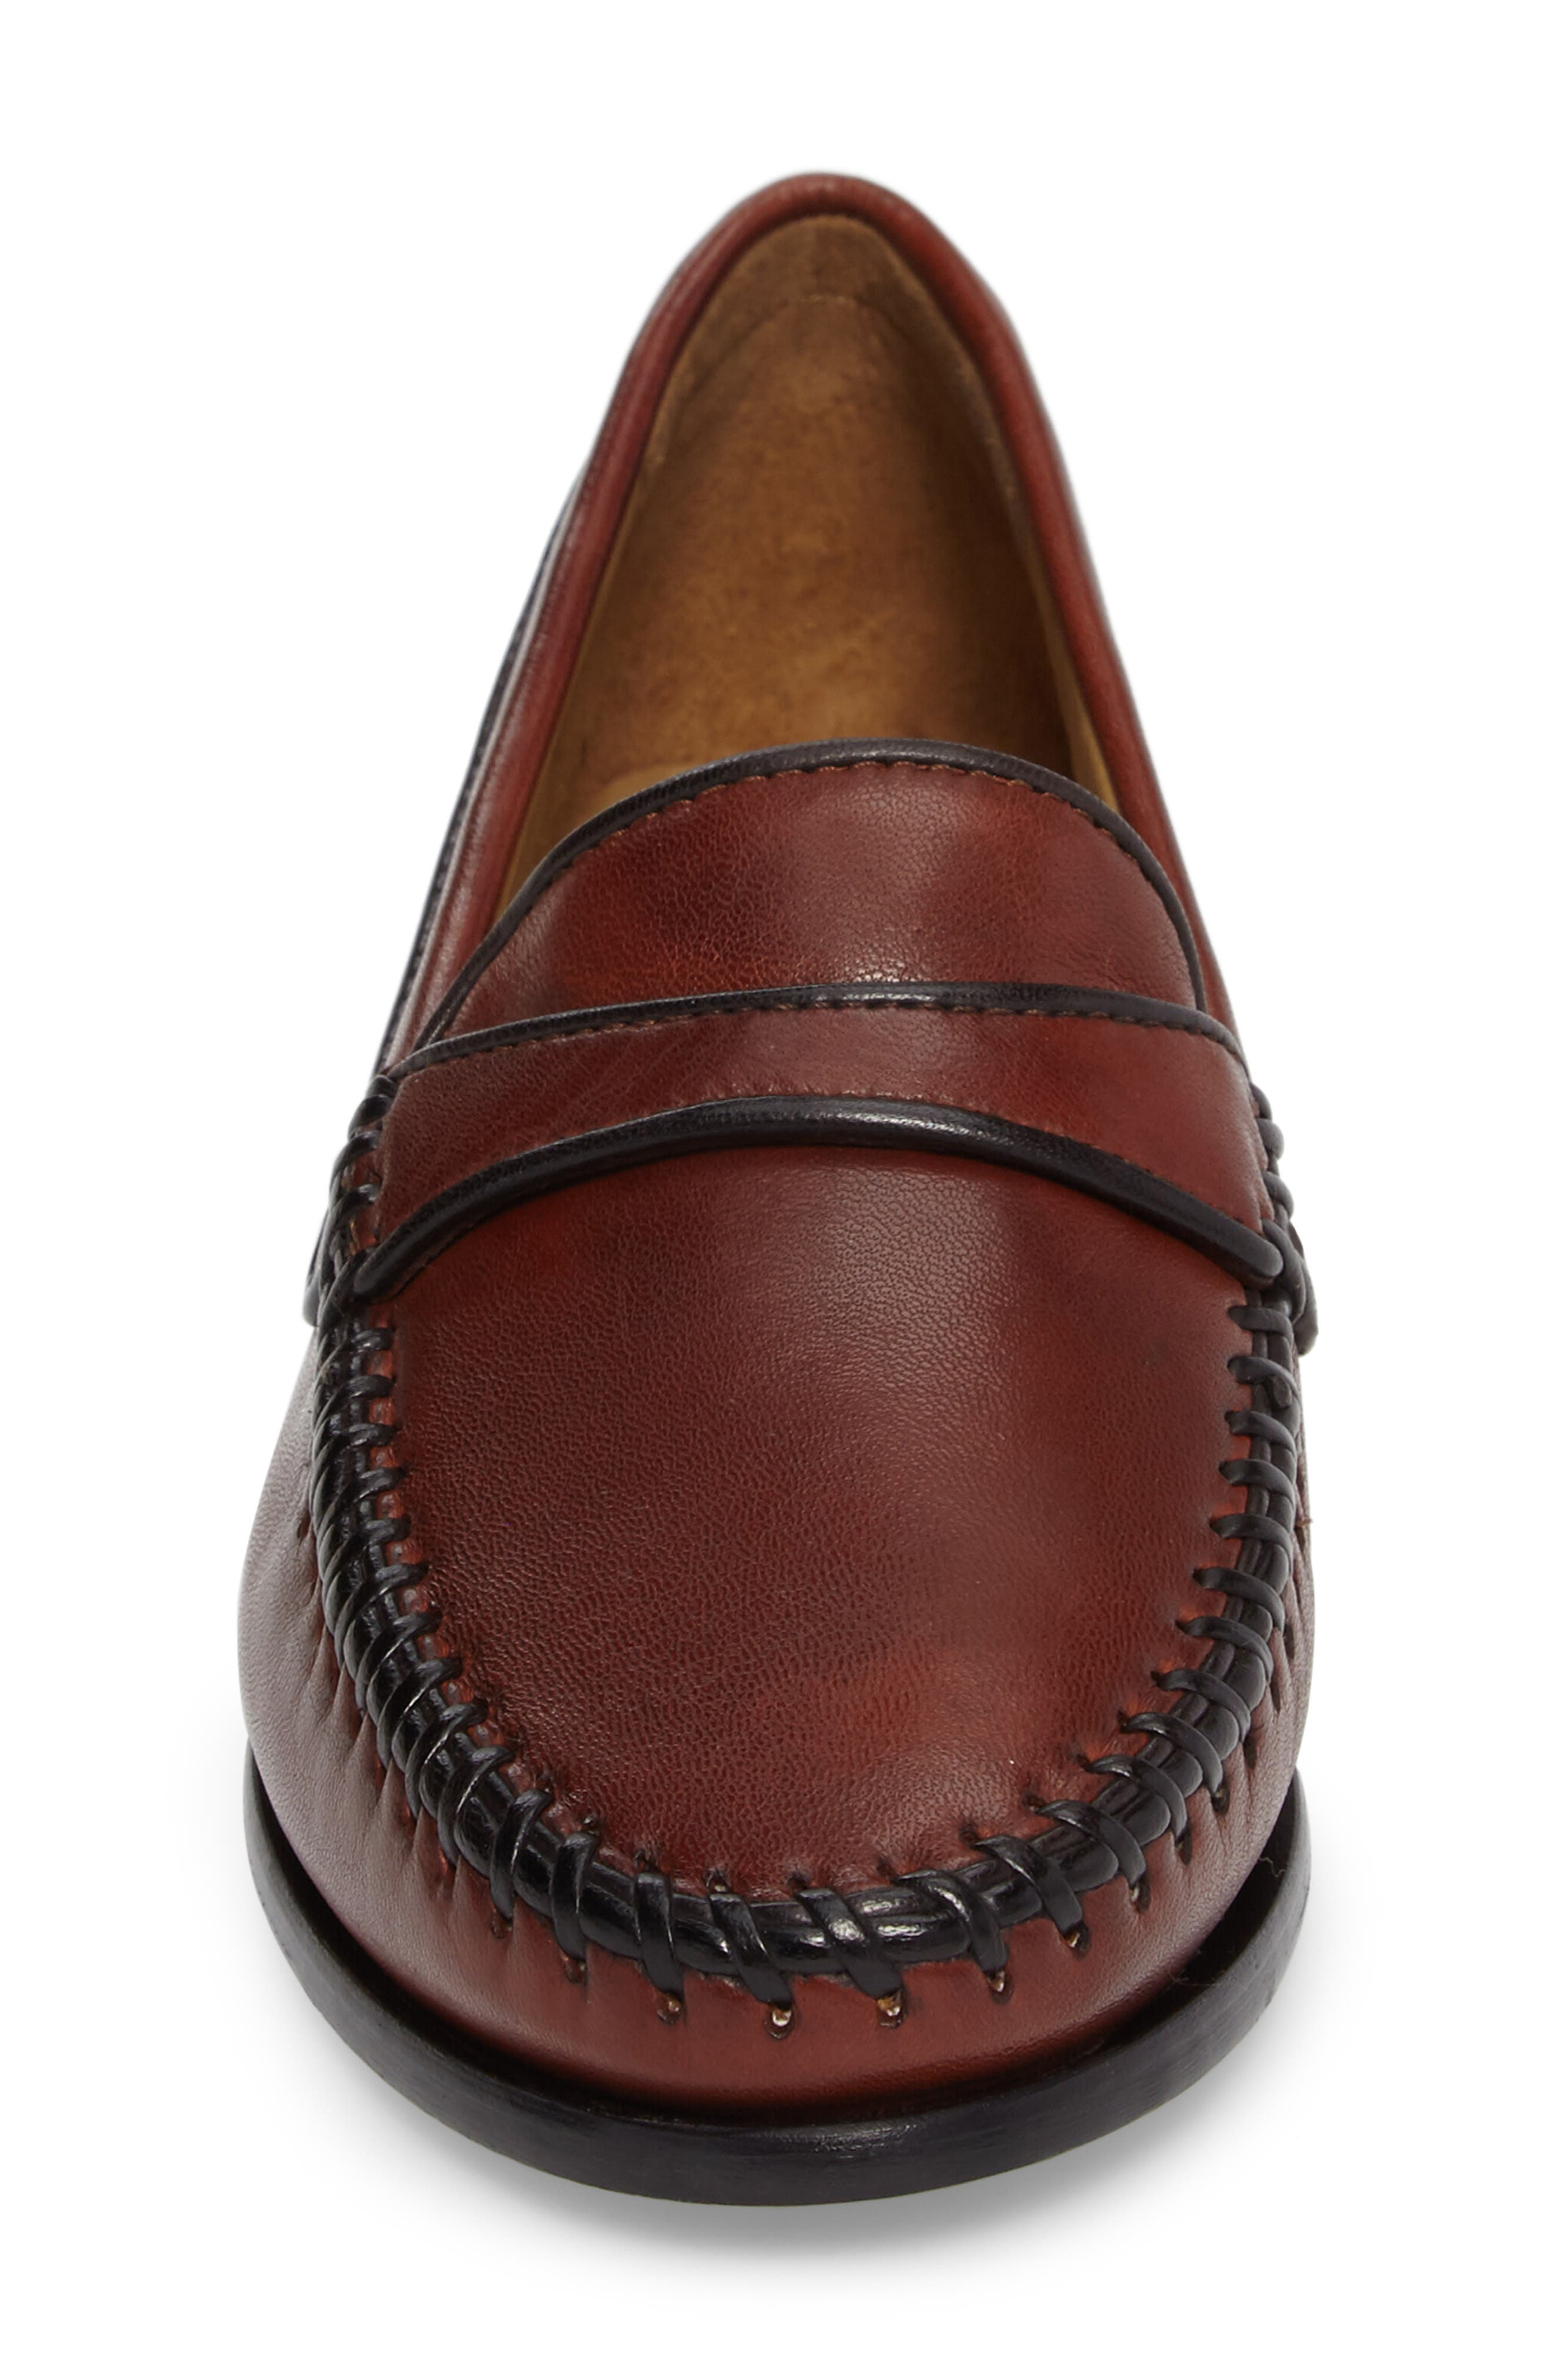 Aria Loafer,                             Alternate thumbnail 4, color,                             Vintage Luggage Leather